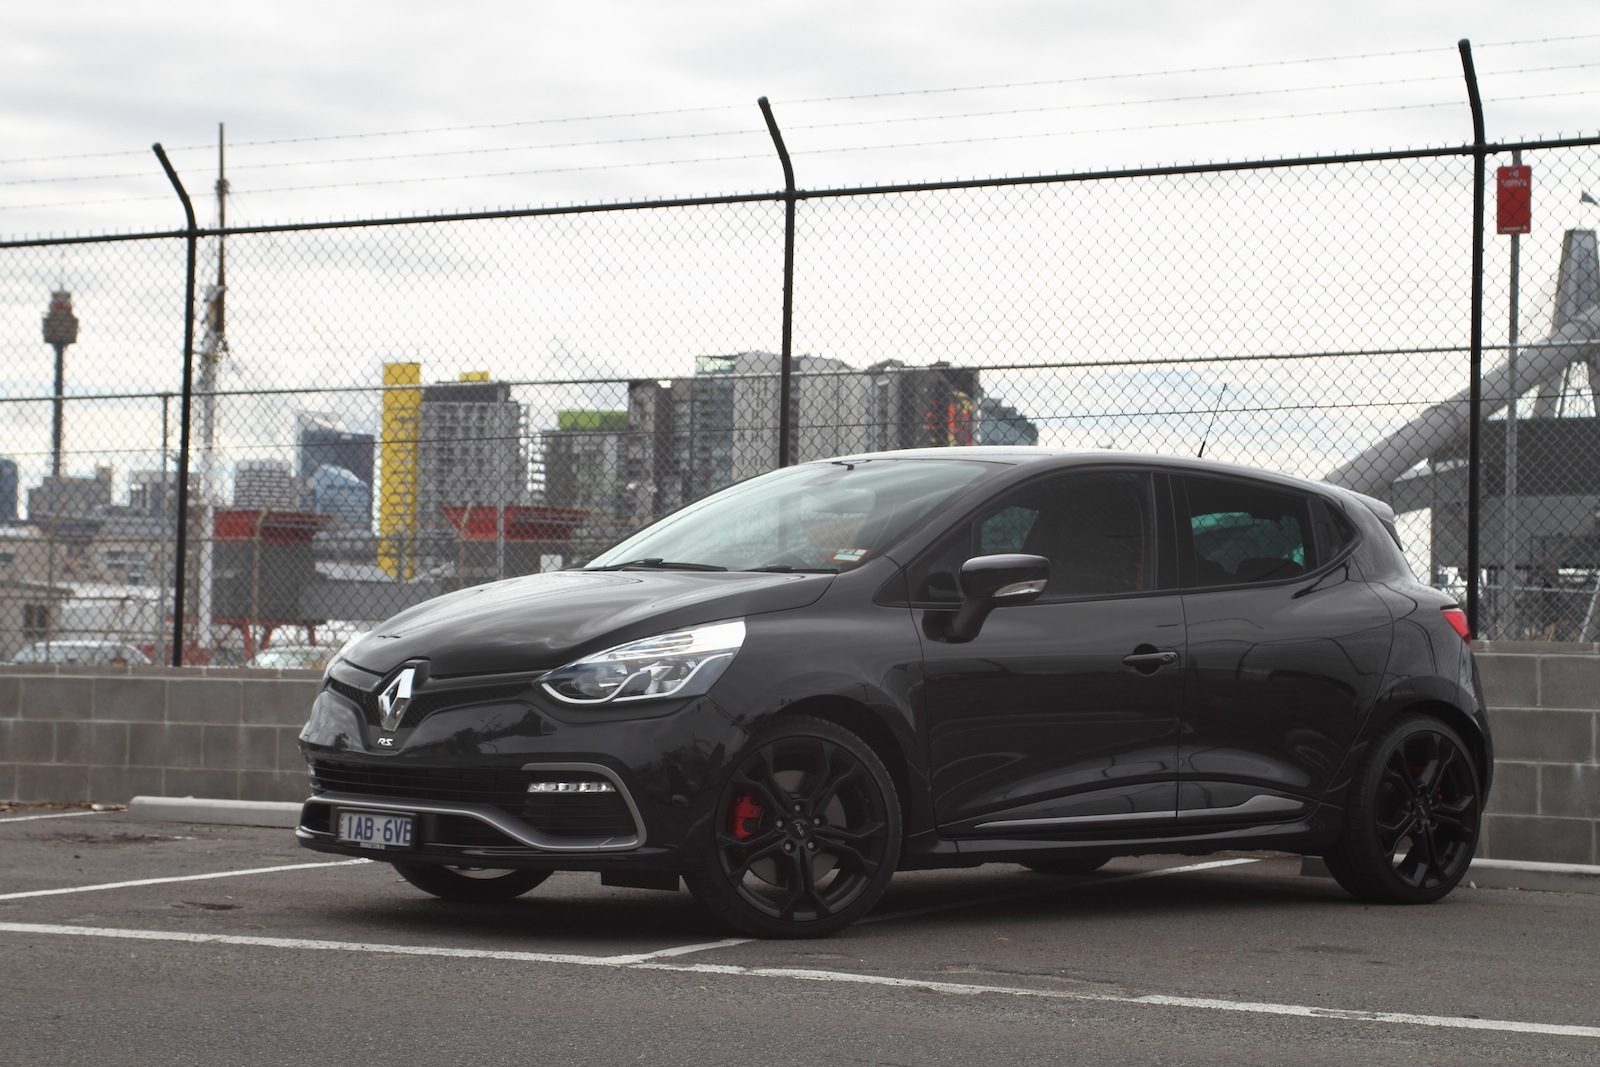 Ford Fiesta St V Renault Clio Rs200 Comparison Review Caradvice